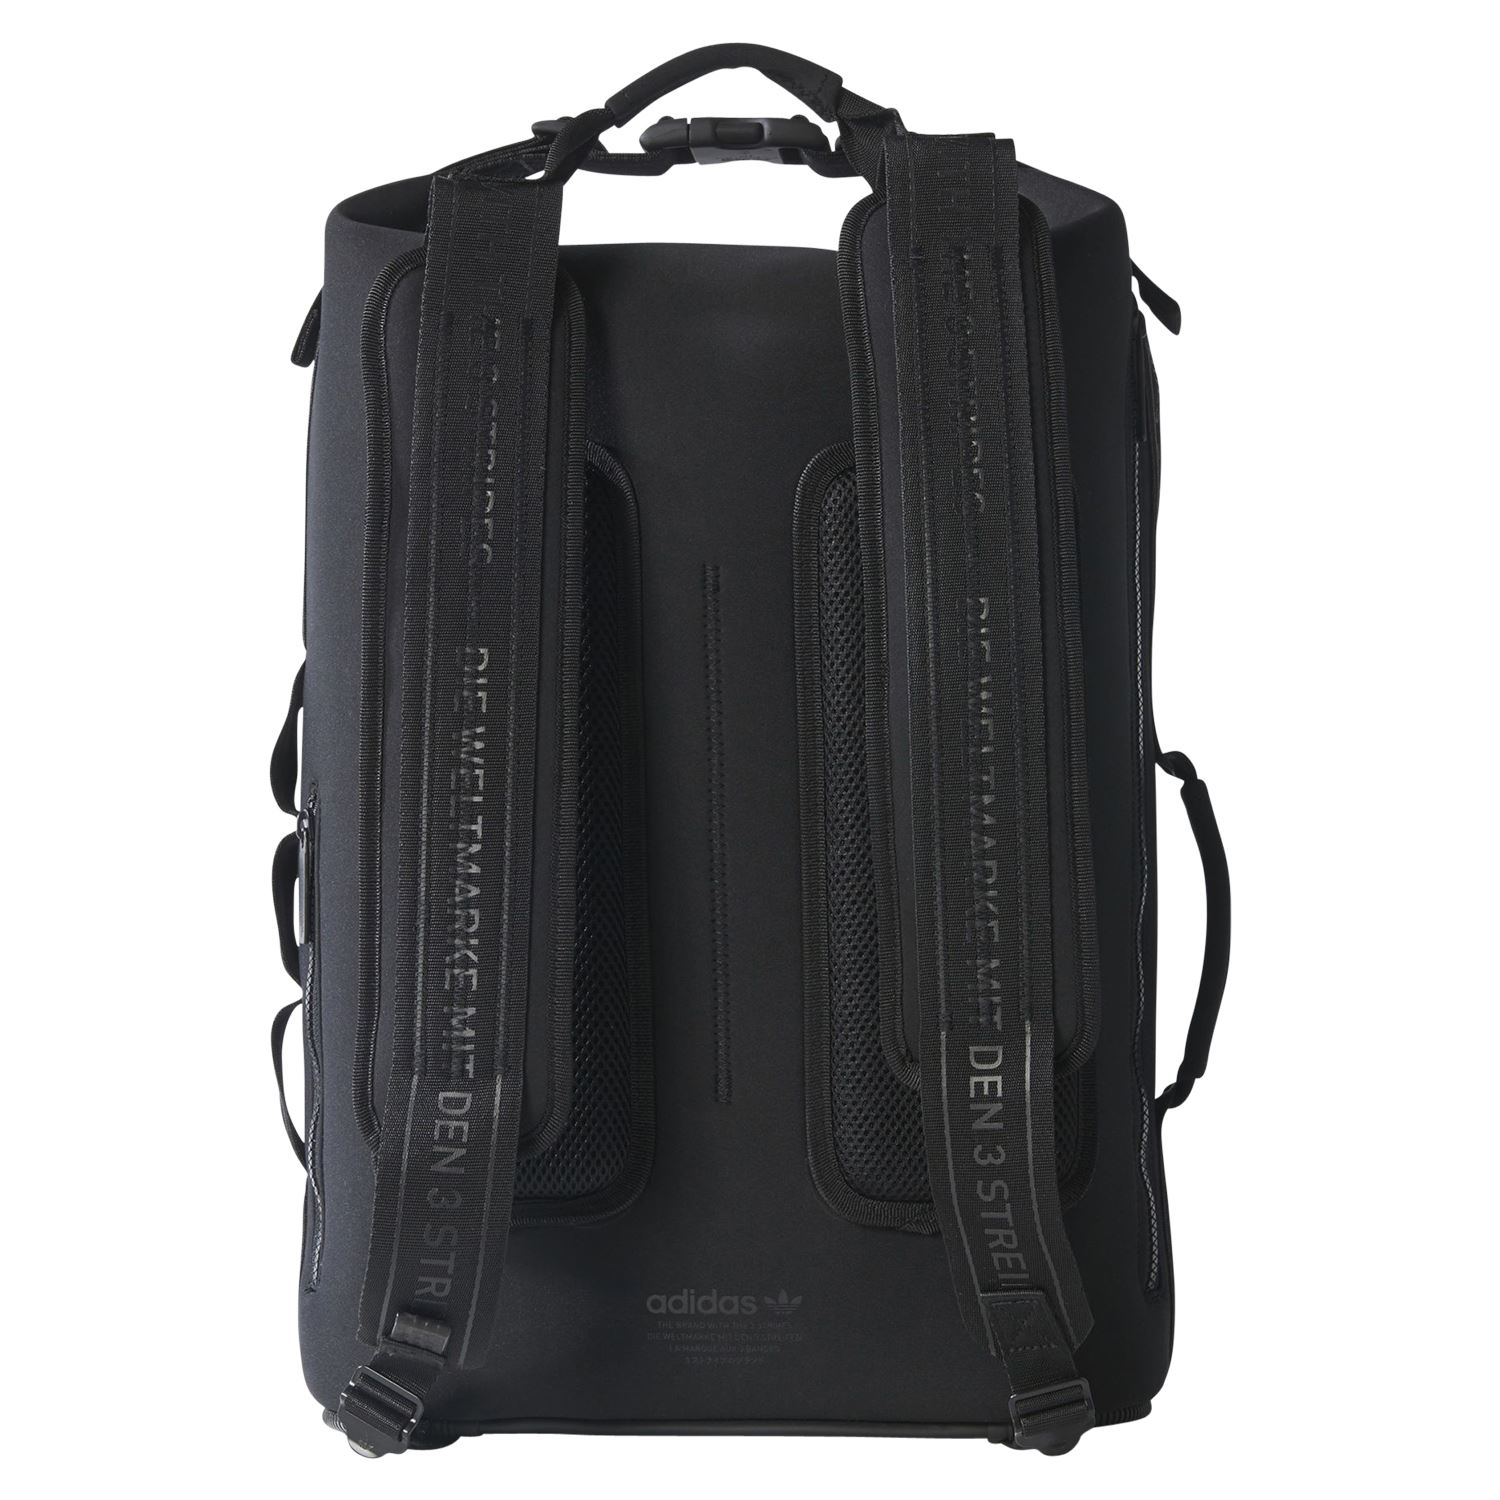 4f1944d37 Details about adidas ORIGINALS NMD NIGHT BACKPACK BLACK BAG UNIVERSITY WORK  COLLEGE LAPTOP